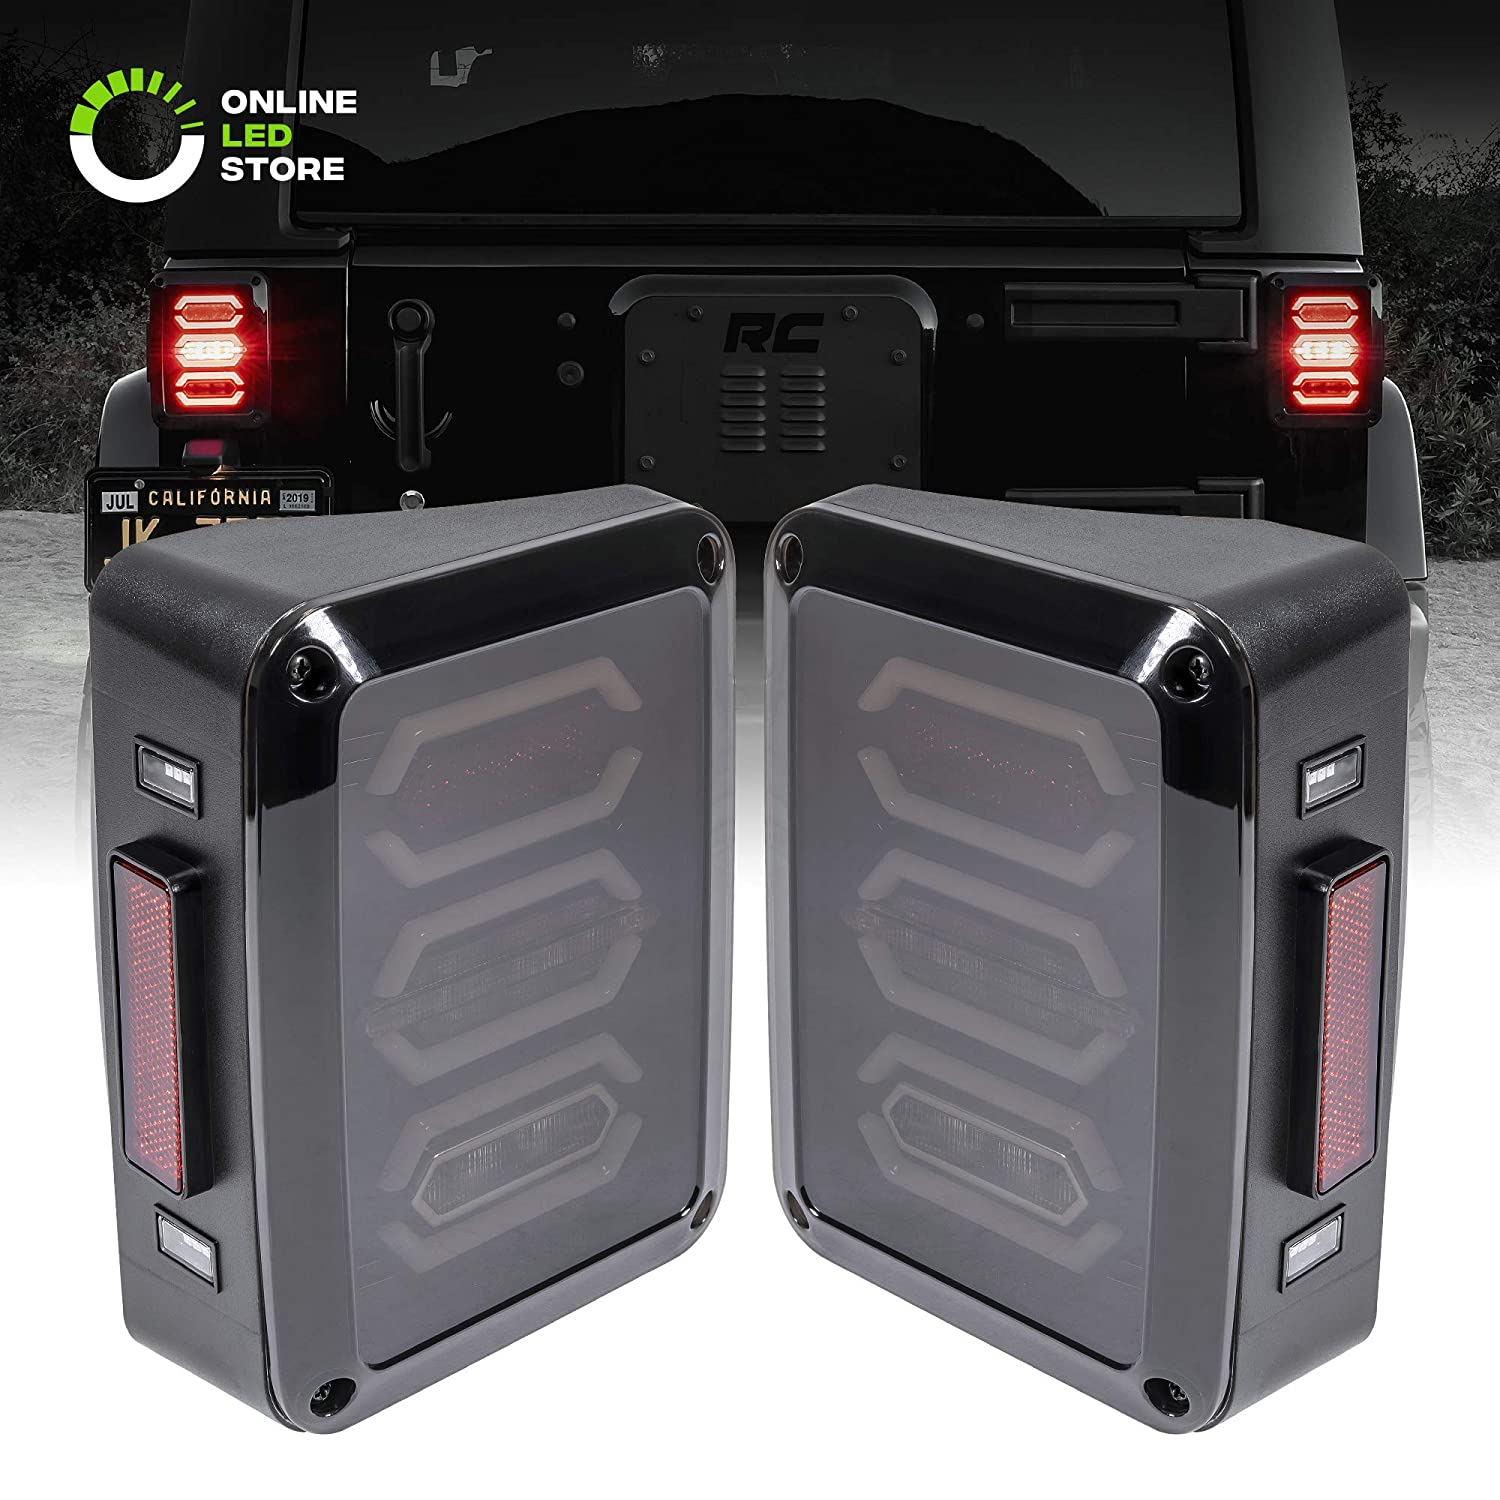 4pc 4' Inch Round LED Trailer Tail Lights [DOT Certified] [Stainless Steel Chrome Bezel] [Connector Plug Included] Stop Brake Lights for Trucks RV Jeep ONLINE LED STORE